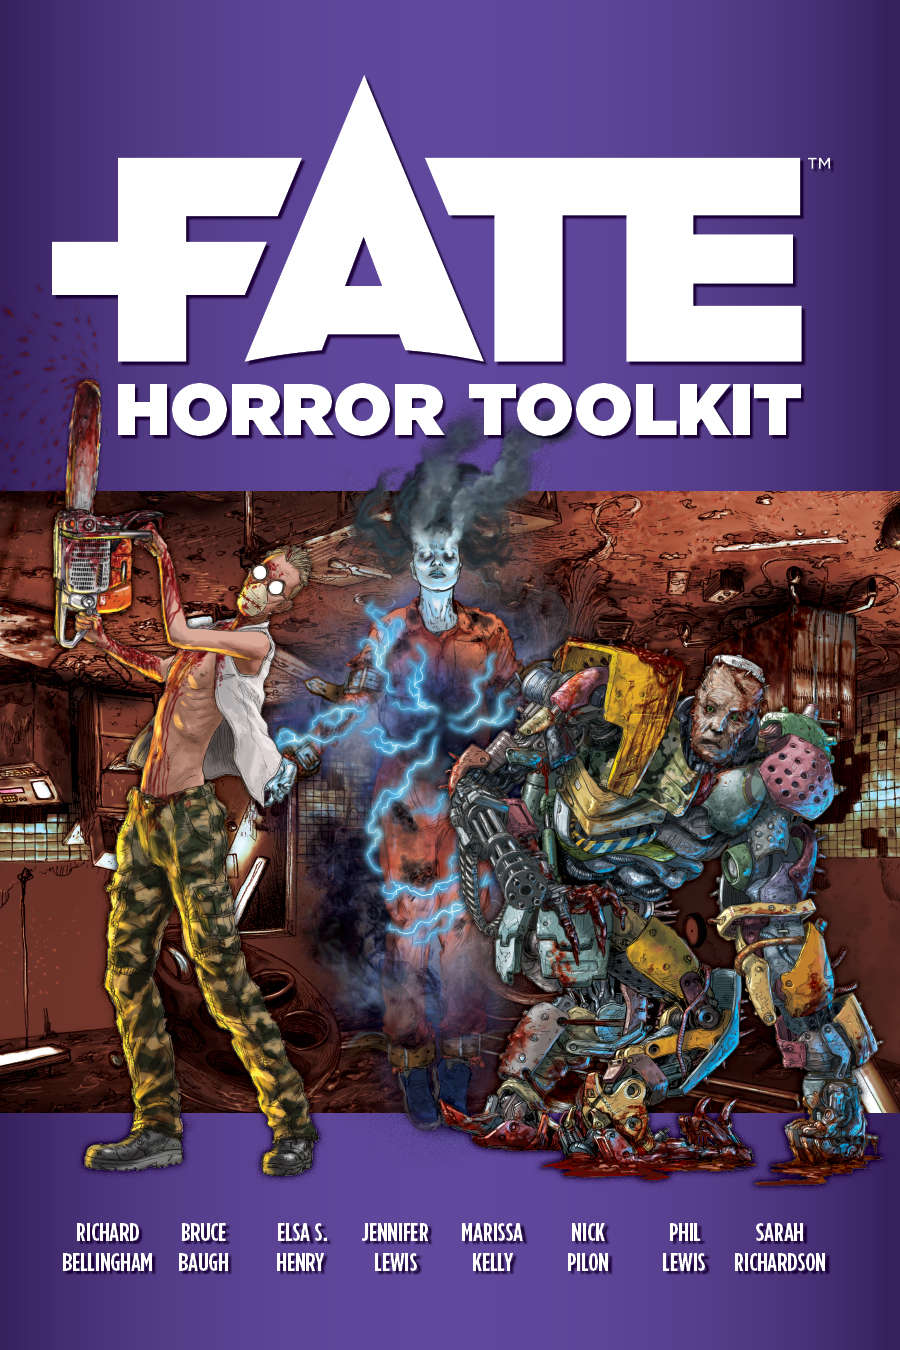 FATE Horror Toolkit cover. Image credit: DriveThruRPG.